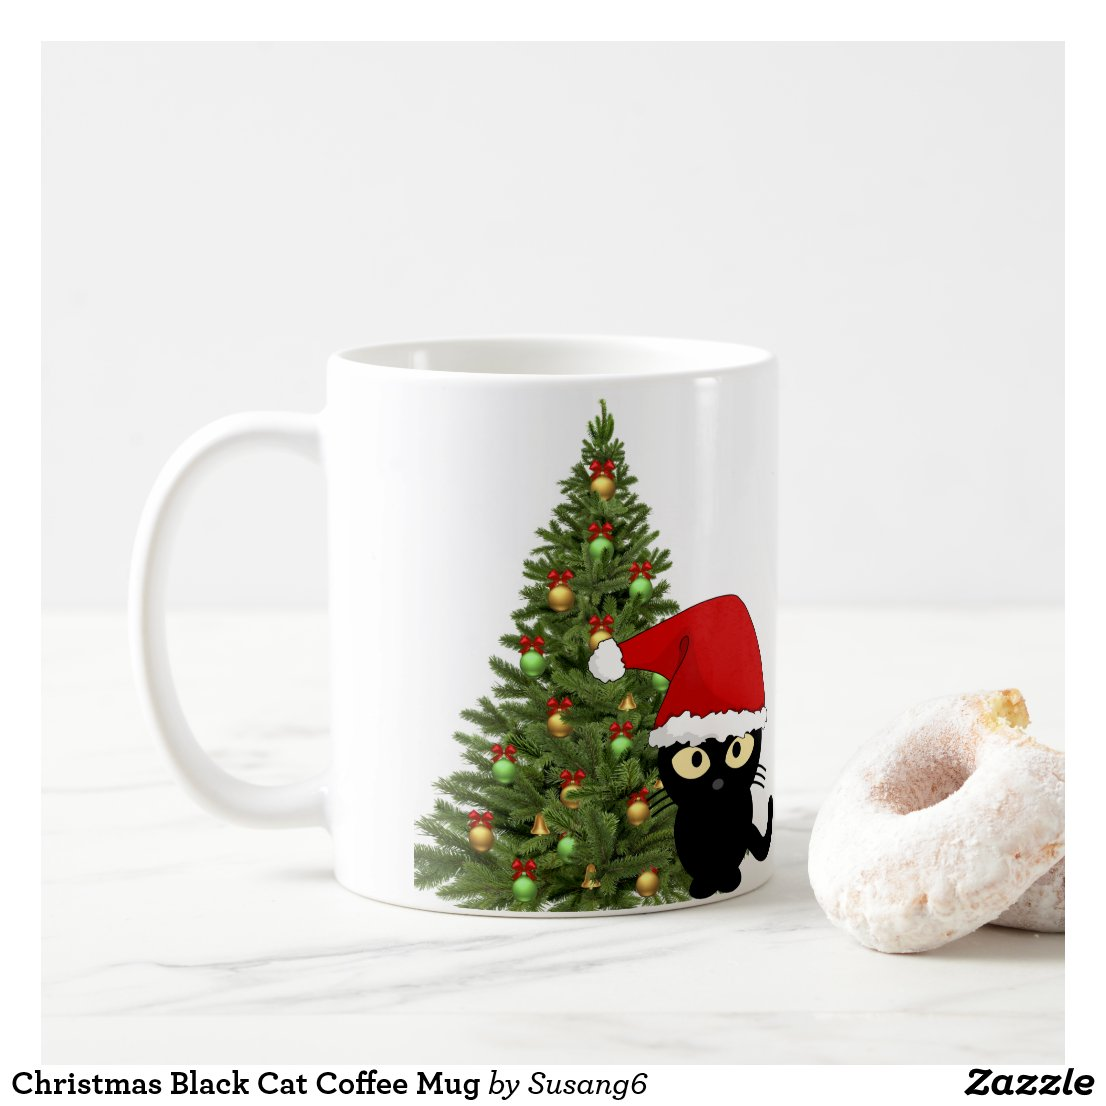 Christmas Black Cat Coffee Mug